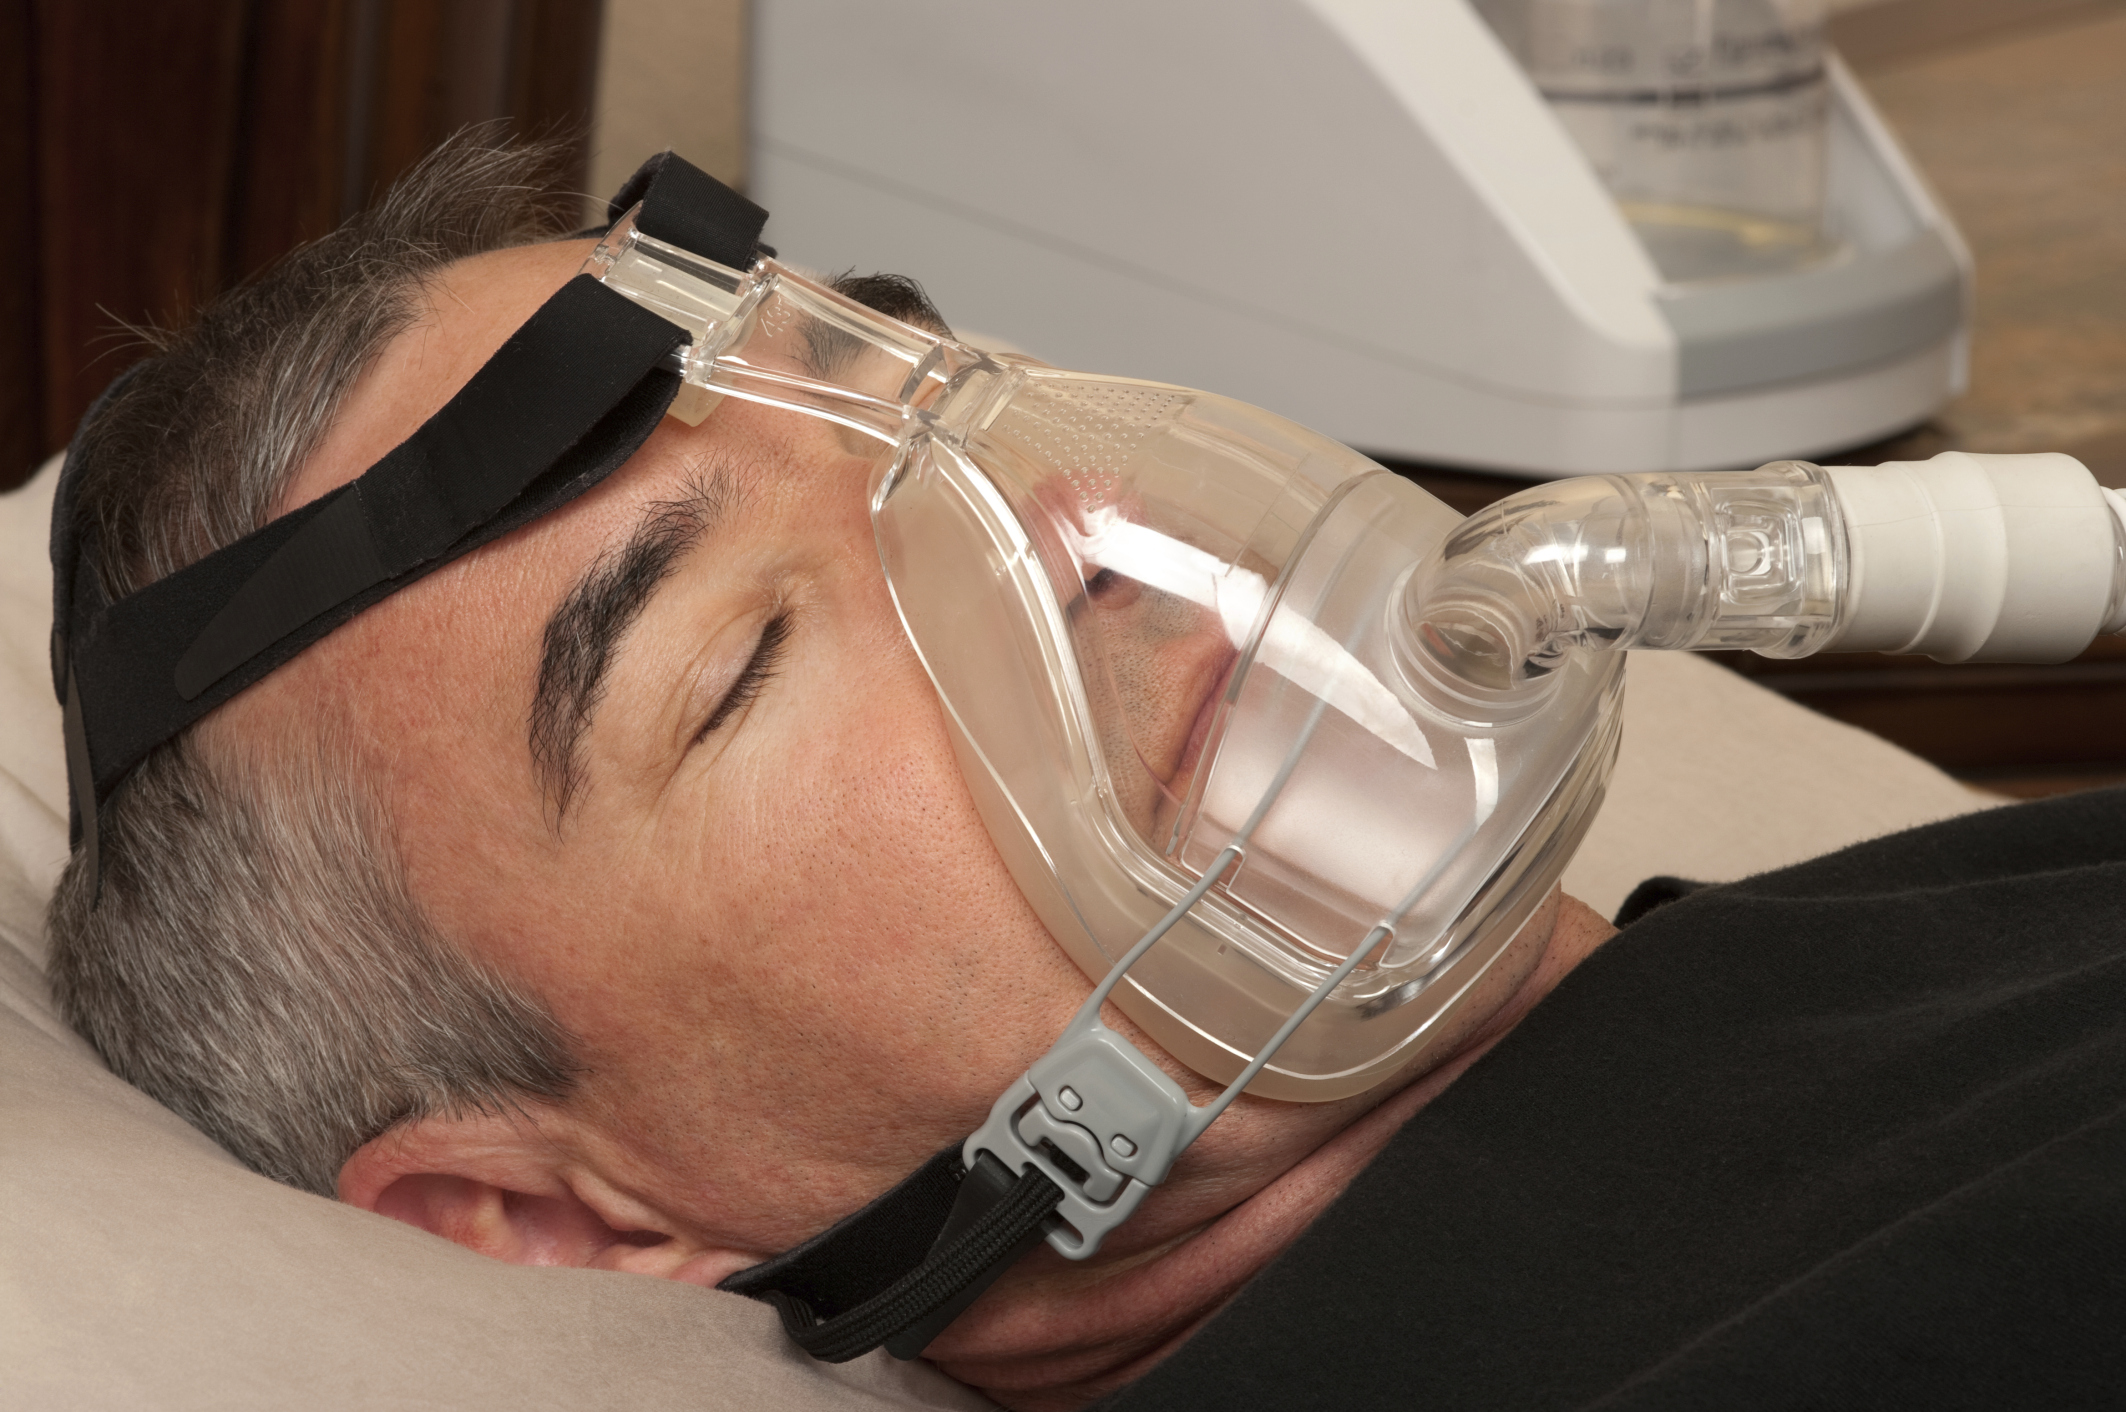 GERD and Barrett's esophagus patients have obstructive sleep apnea, poor sleep quality